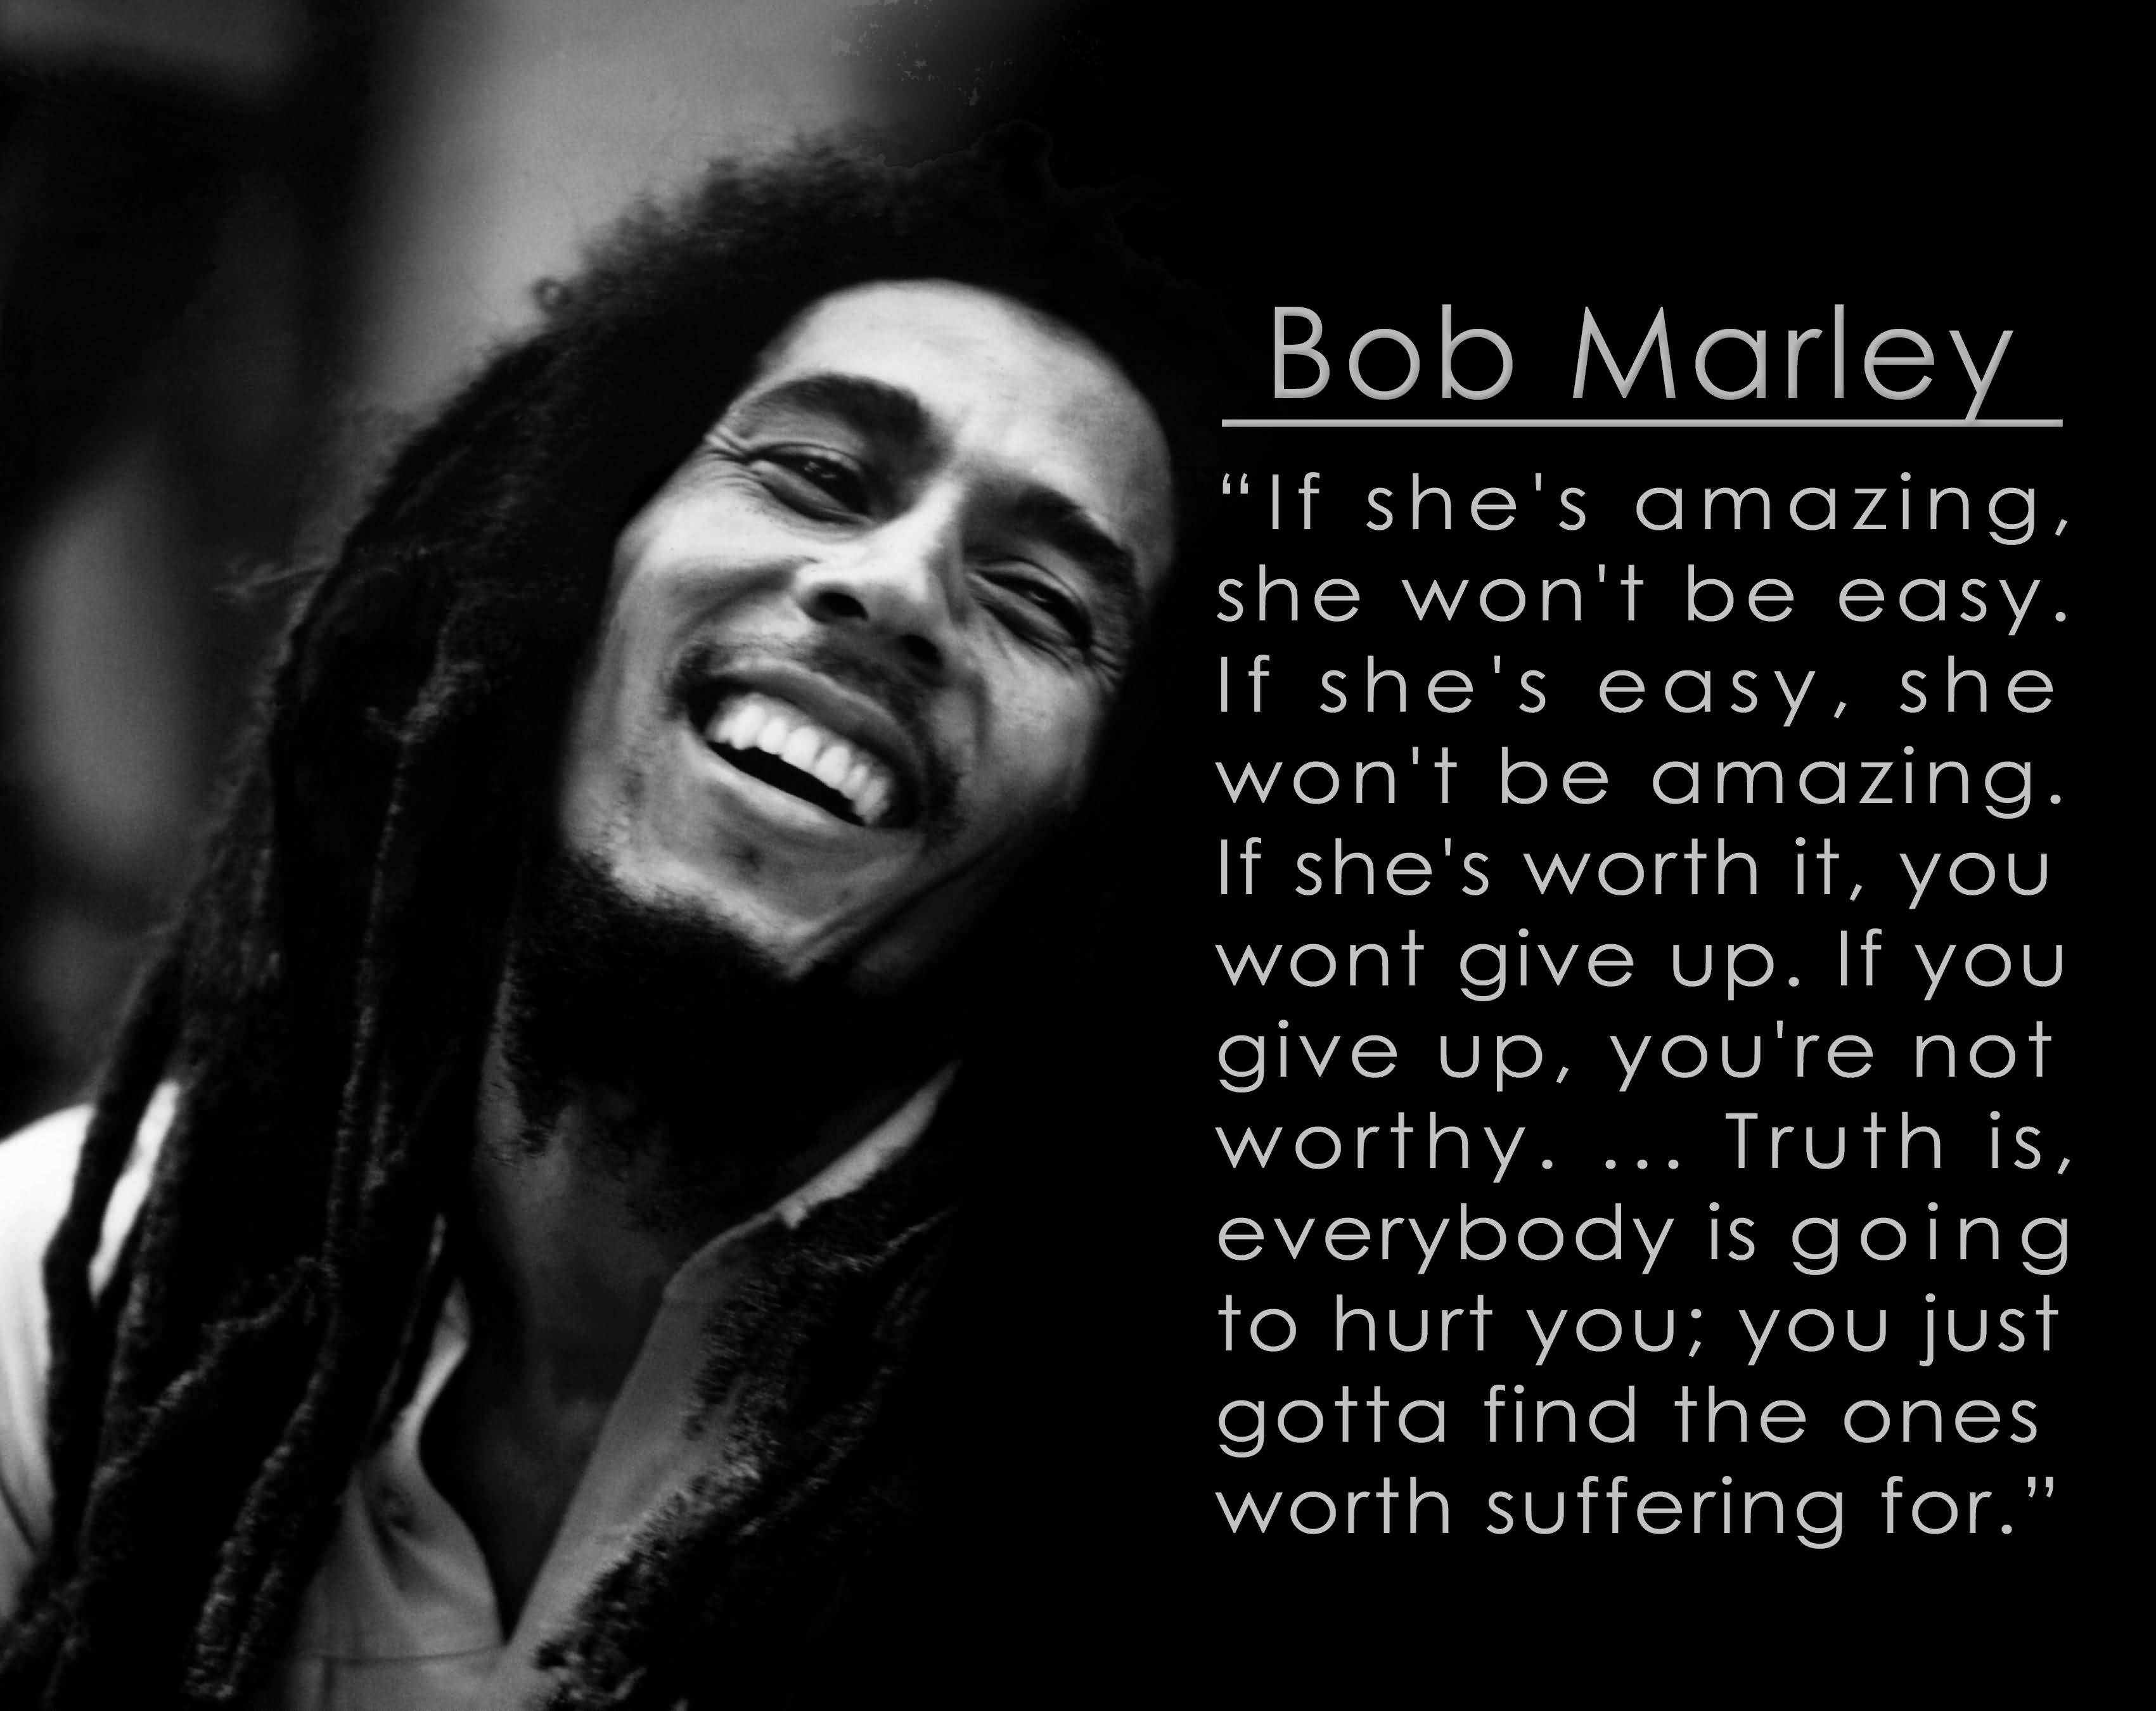 Bob Marley Quotes About Friendship 16